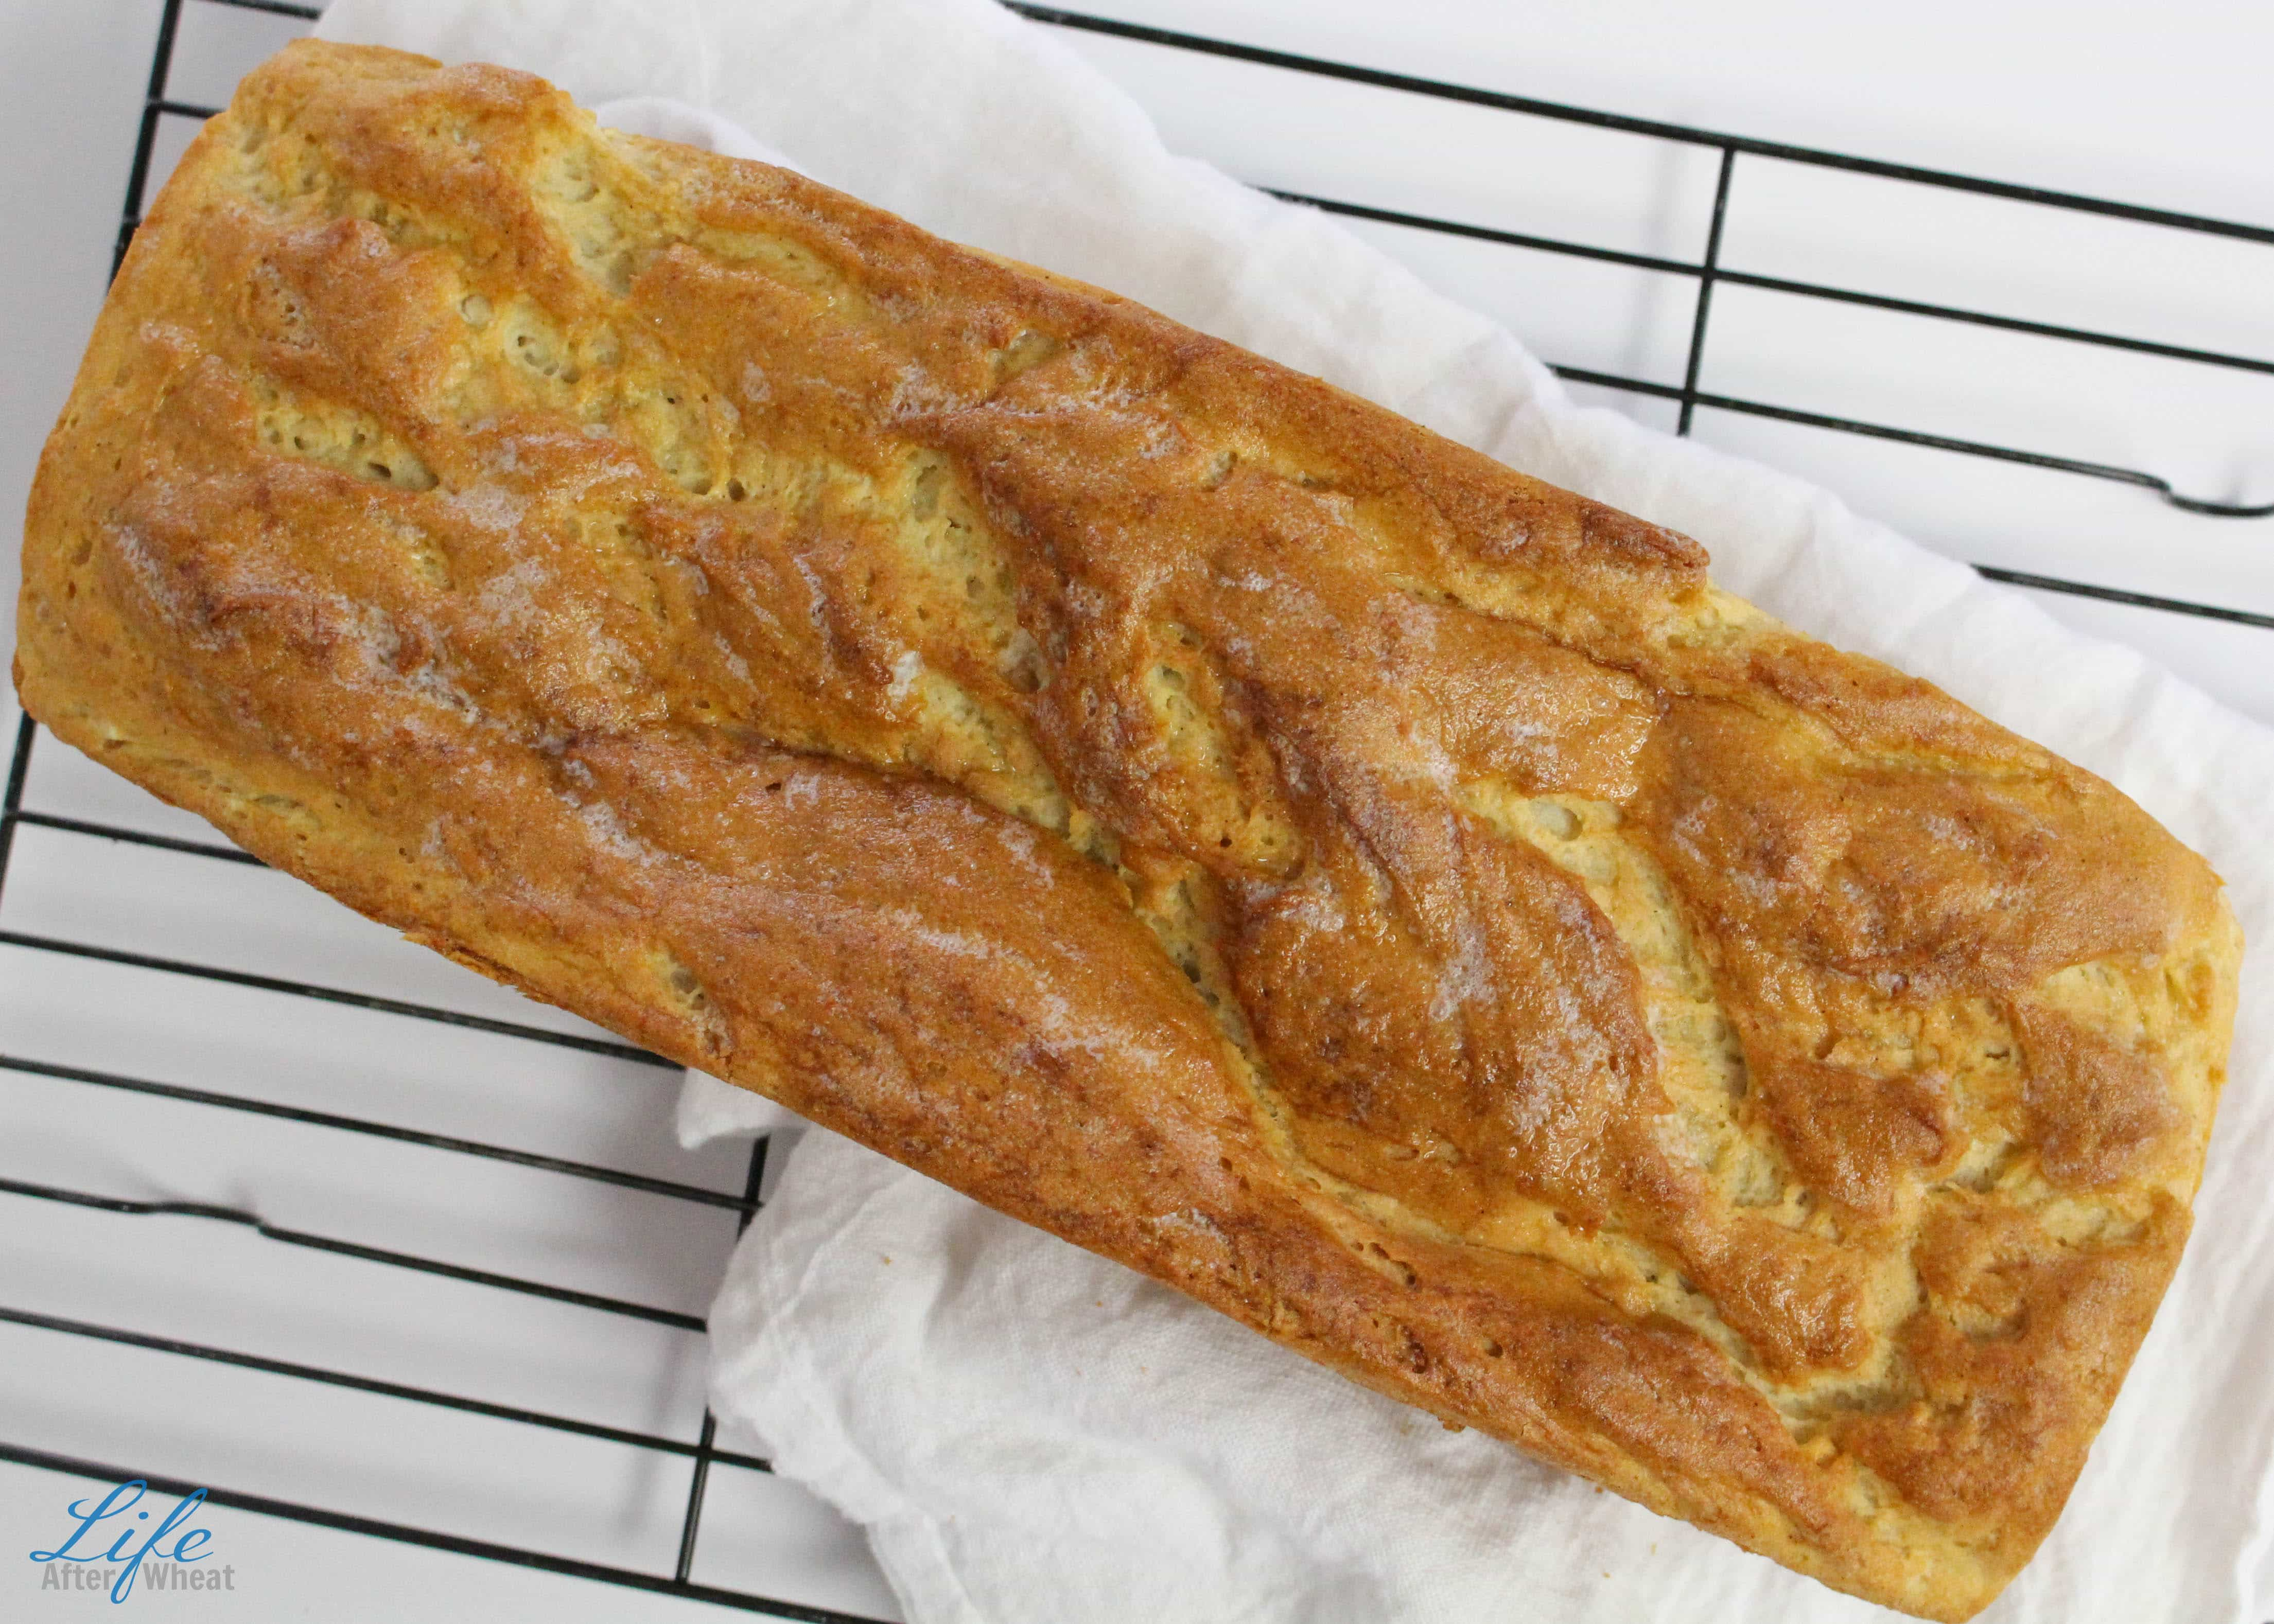 Best Gluten Free Bread Everything you need to know